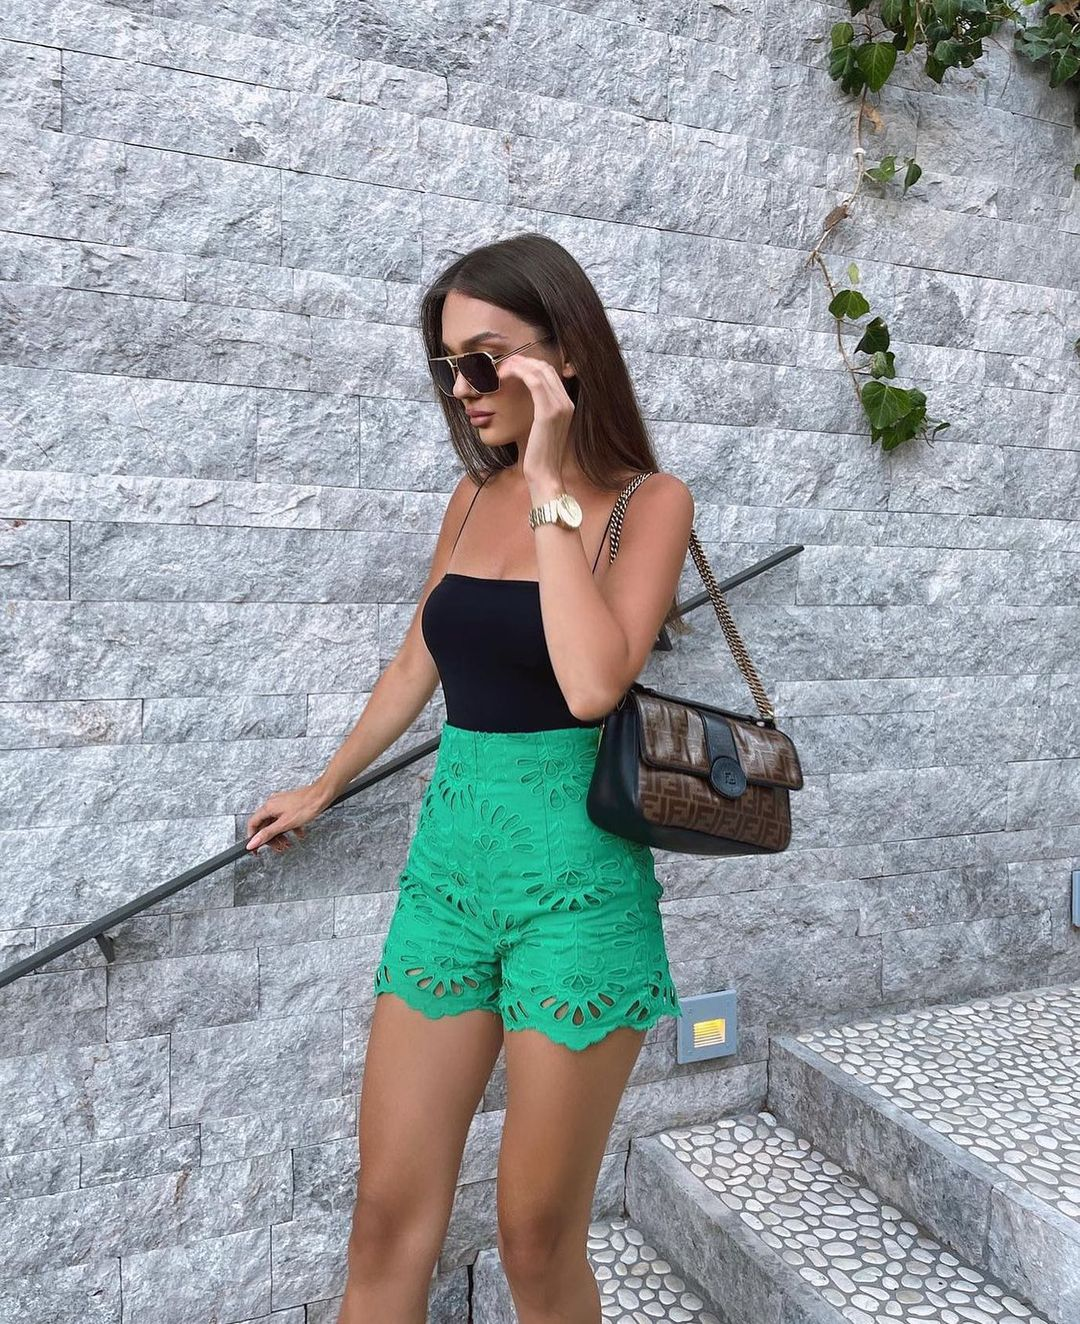 embroidered and perforated shorts de Zara sur zarastreetstyle